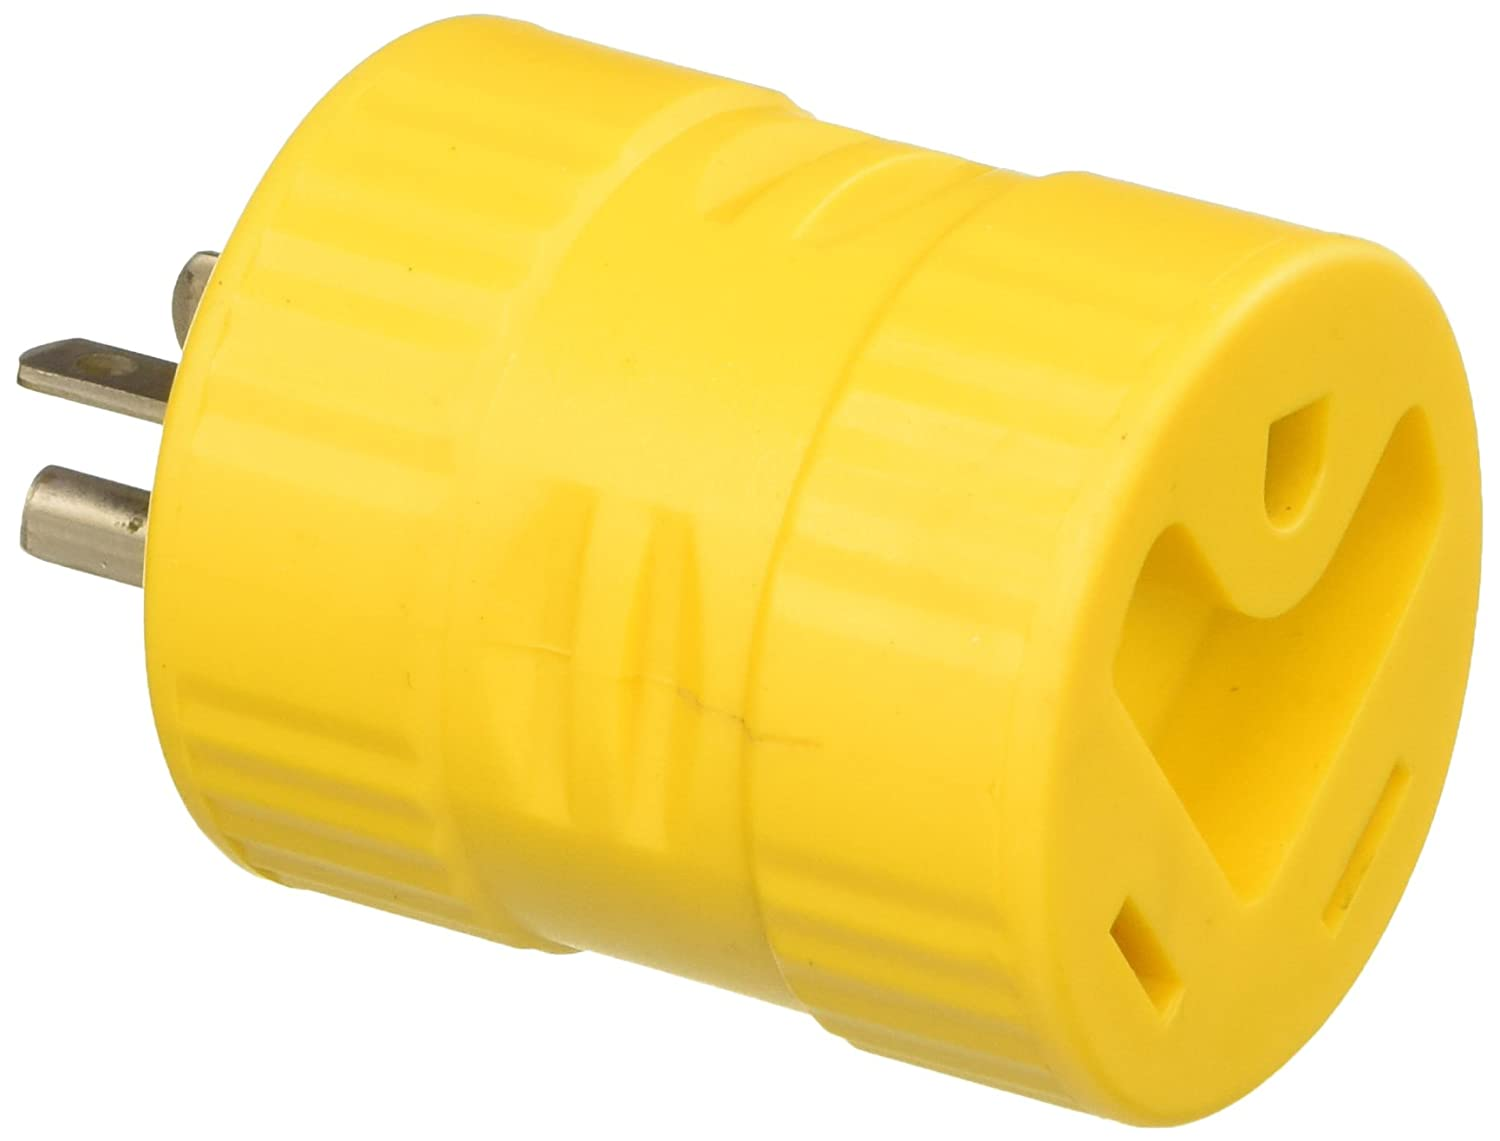 30A//125V Connector and 20A//125V Straight Blade Male Plug ParkPower 126A Generator Adapter